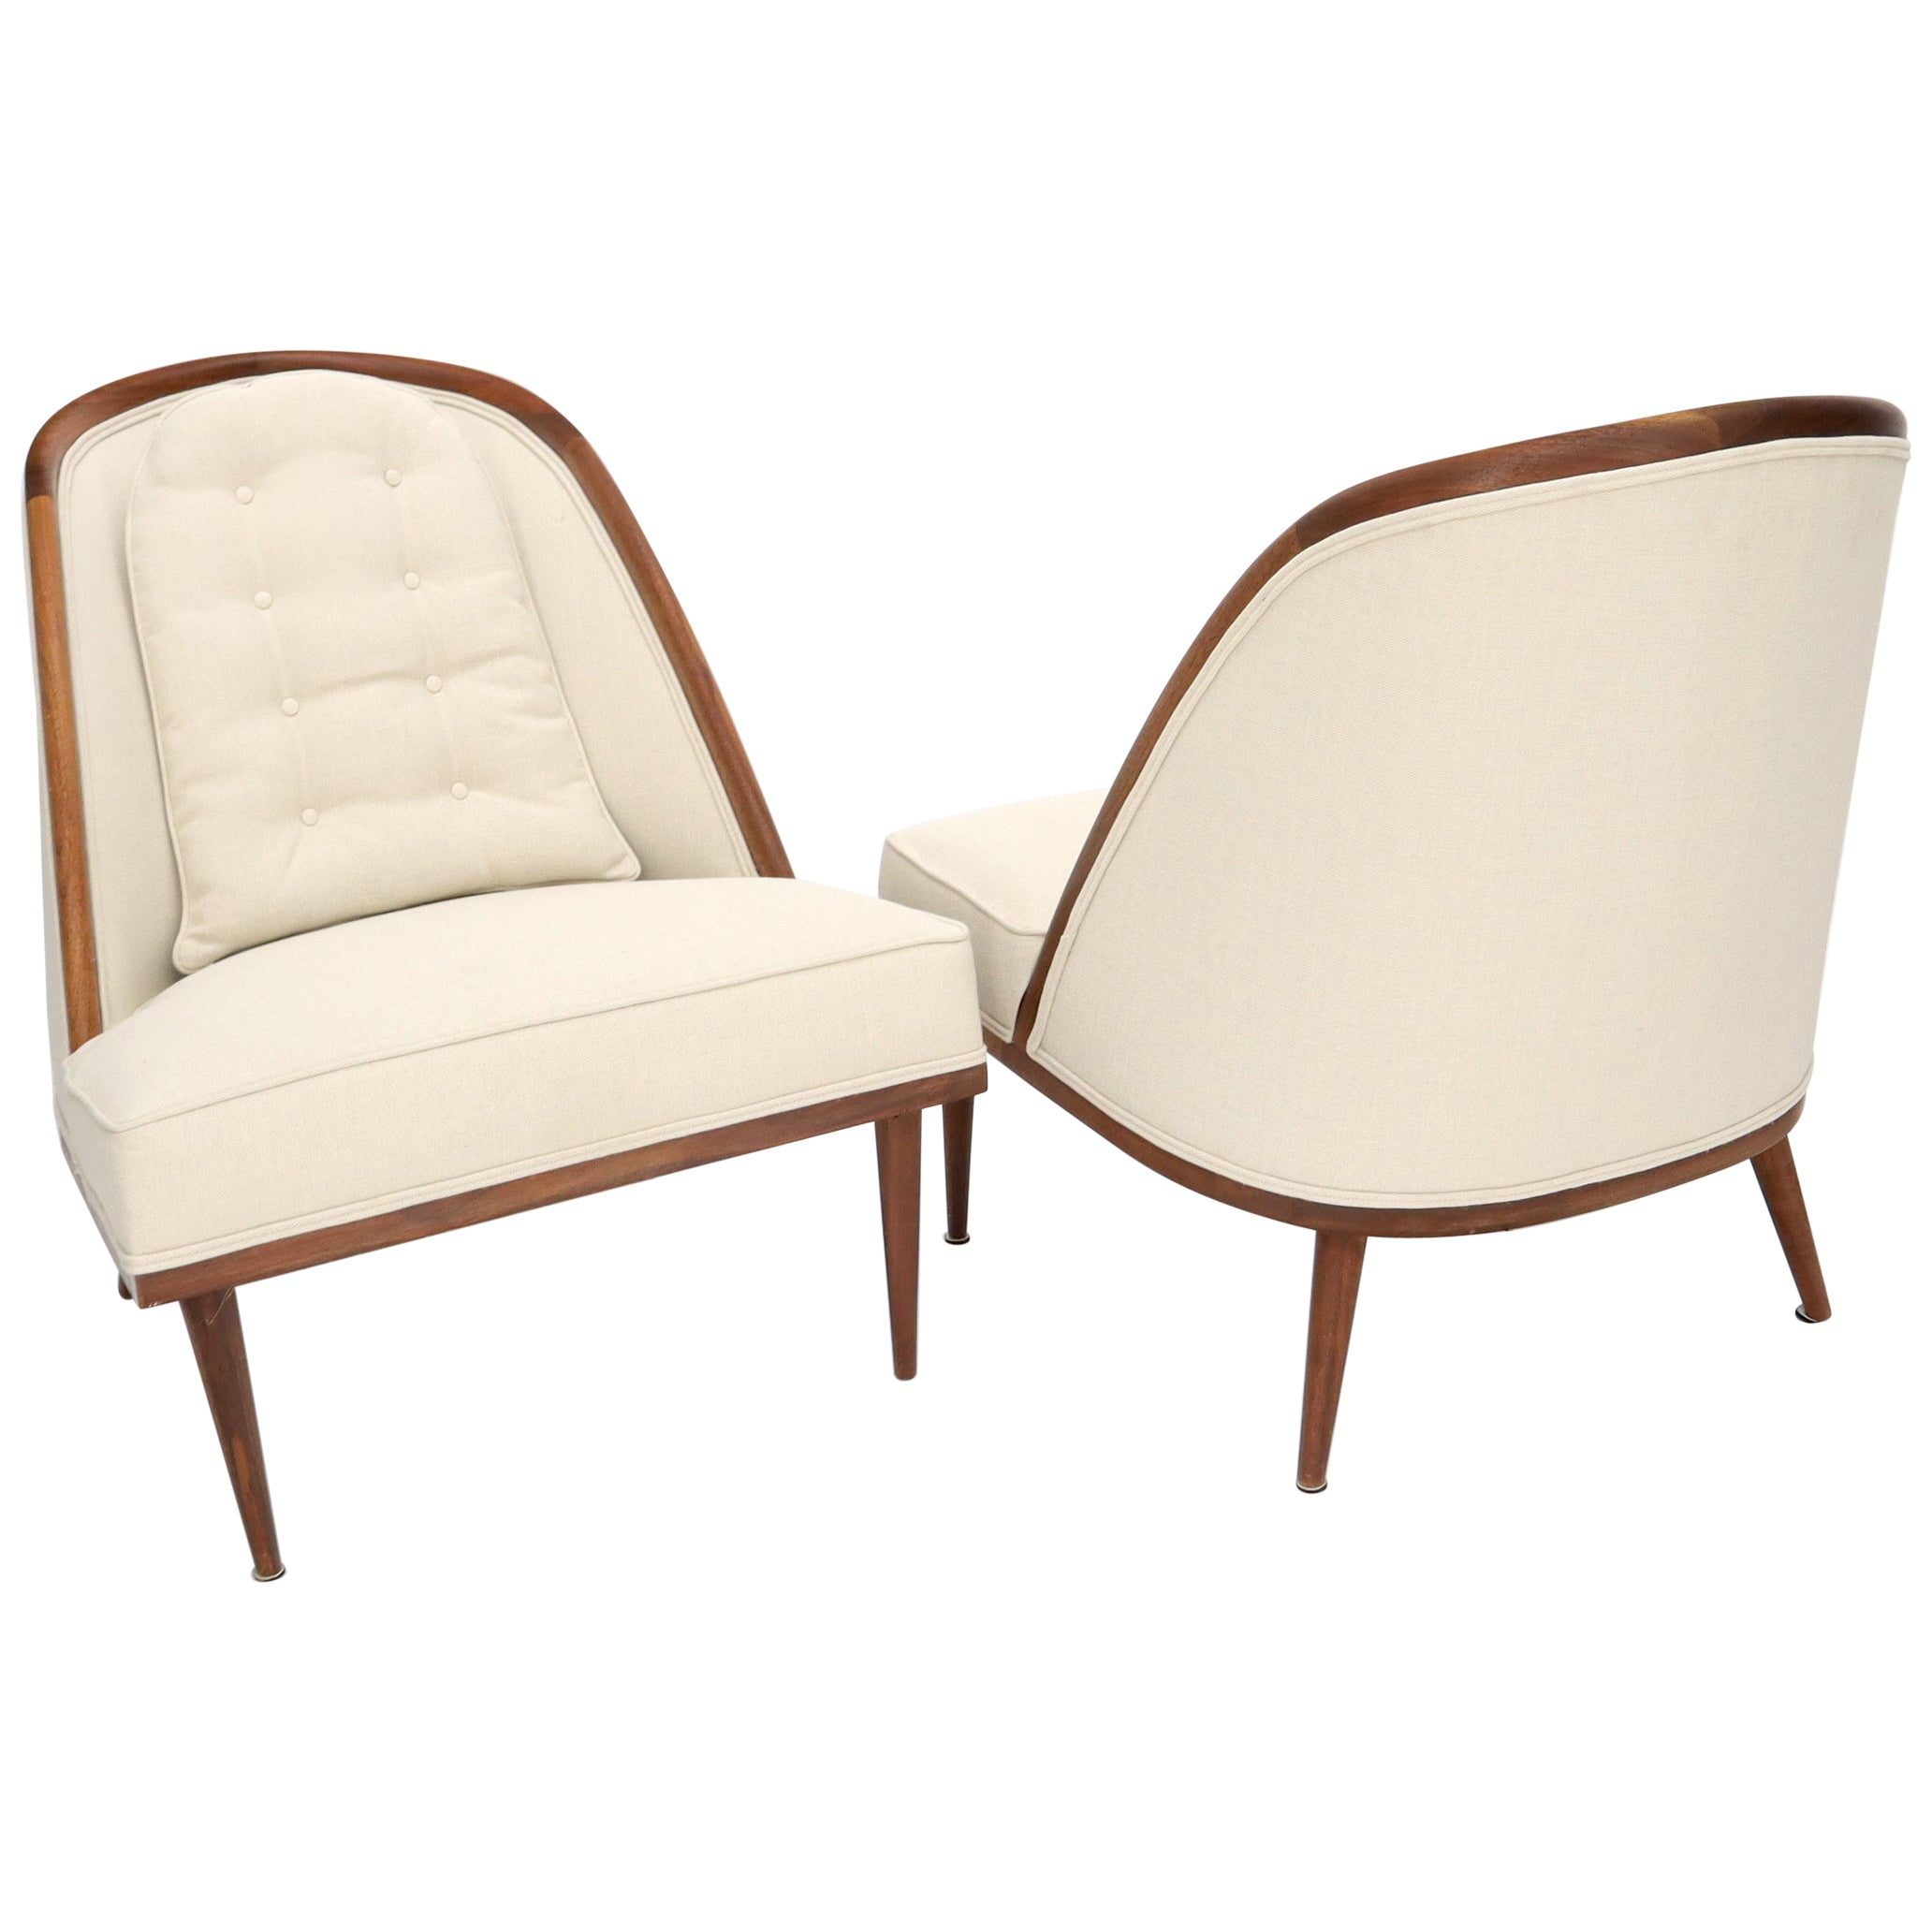 Pair of Oiled Walnut Frames Tall Tapered Legs New Upholstery Lounge Chairs